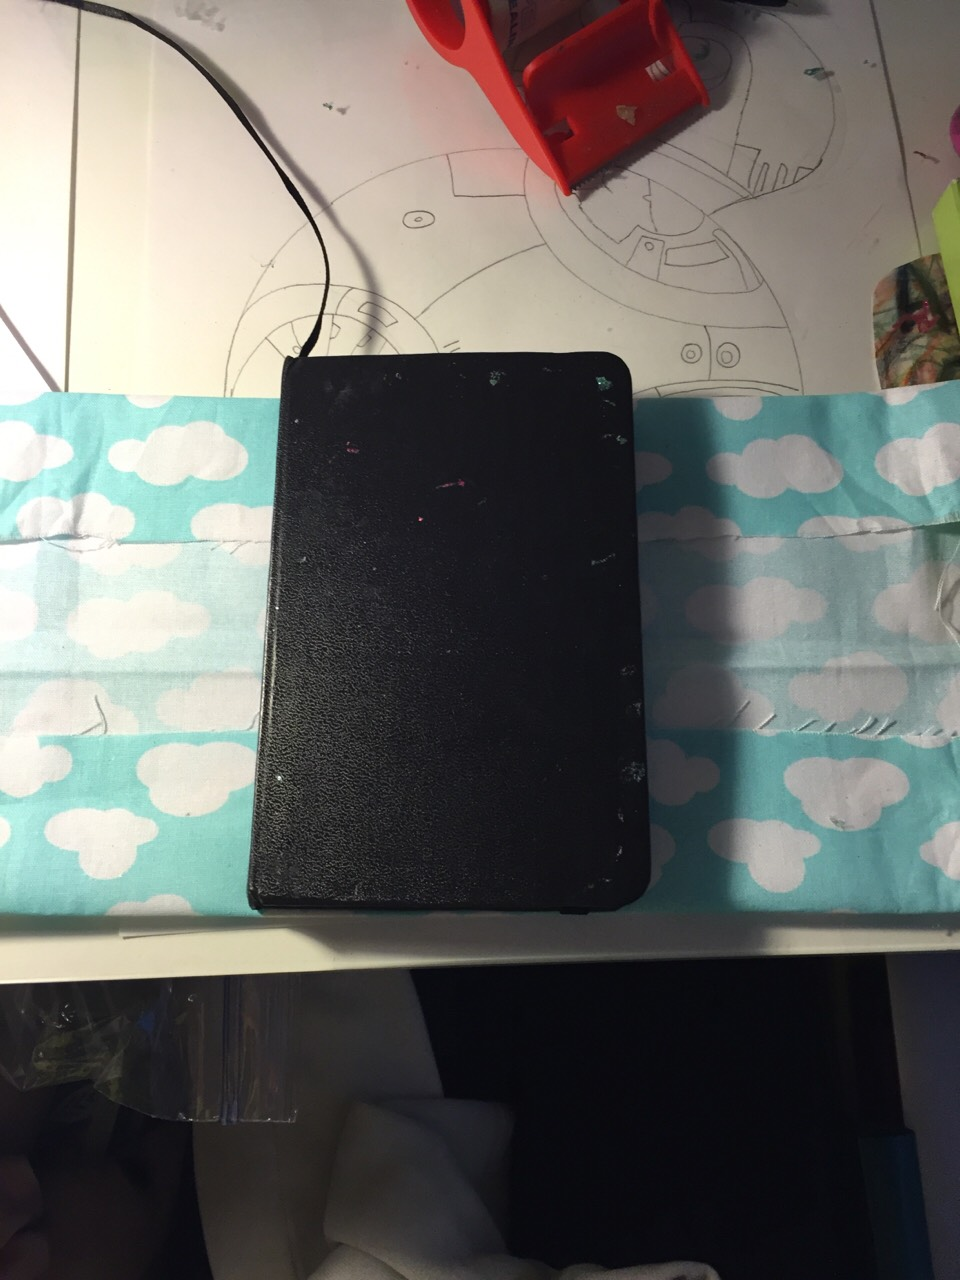 Get your journal and put on the cloth. Then fold it at the top